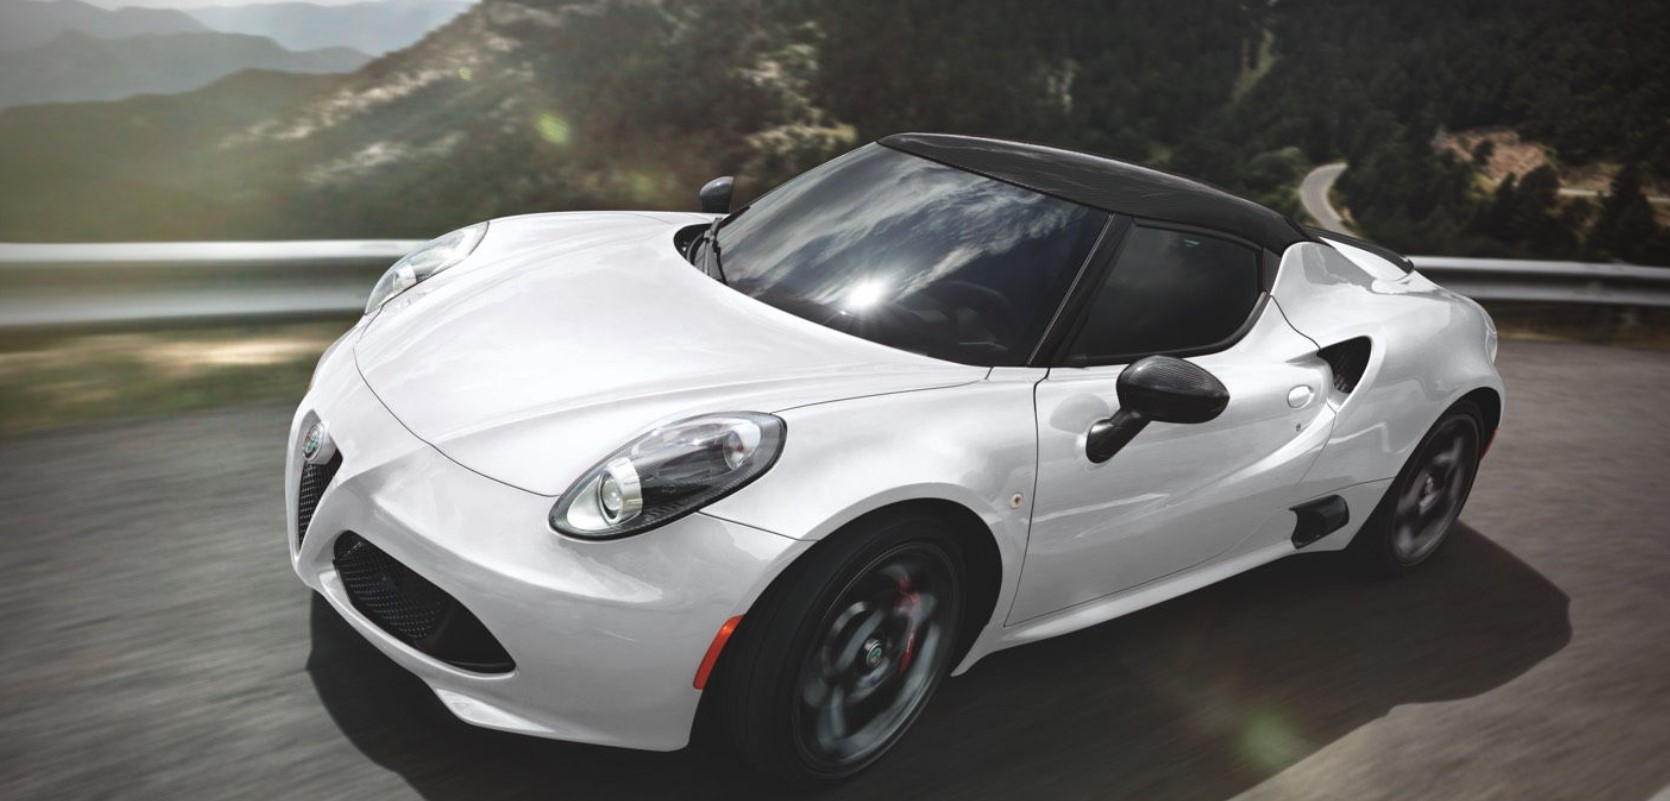 2018 Alfa Romeo 4c Coupe Of Ontario Repair Manual